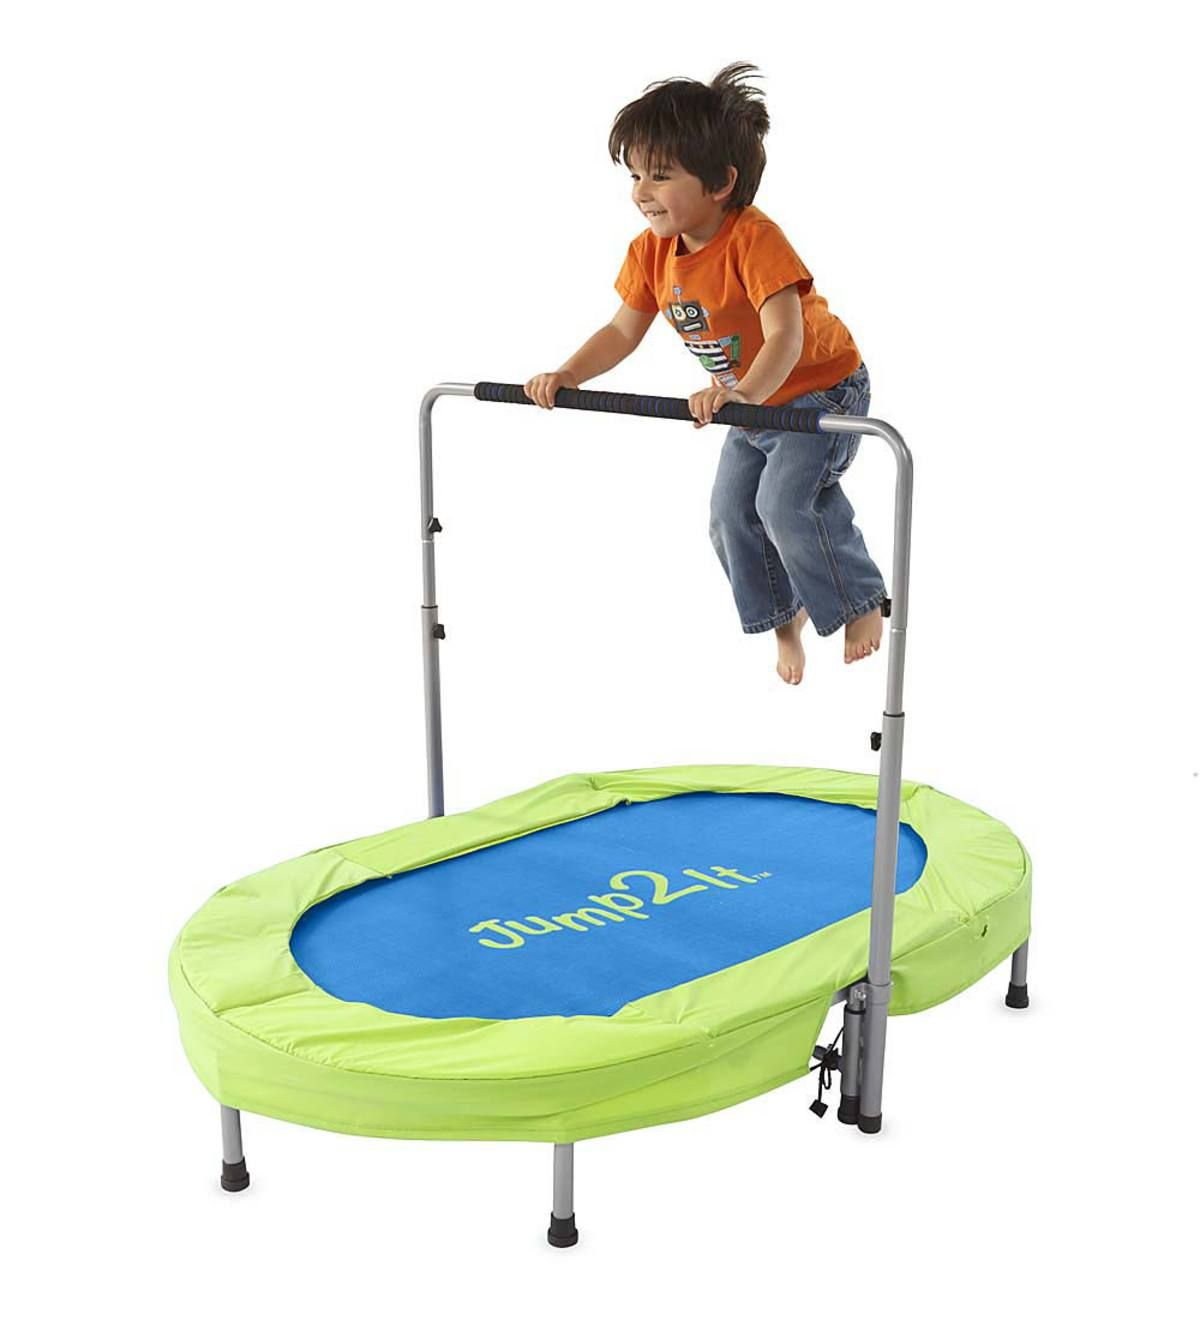 Energetic kids adore this trampoline! It's fun for two or